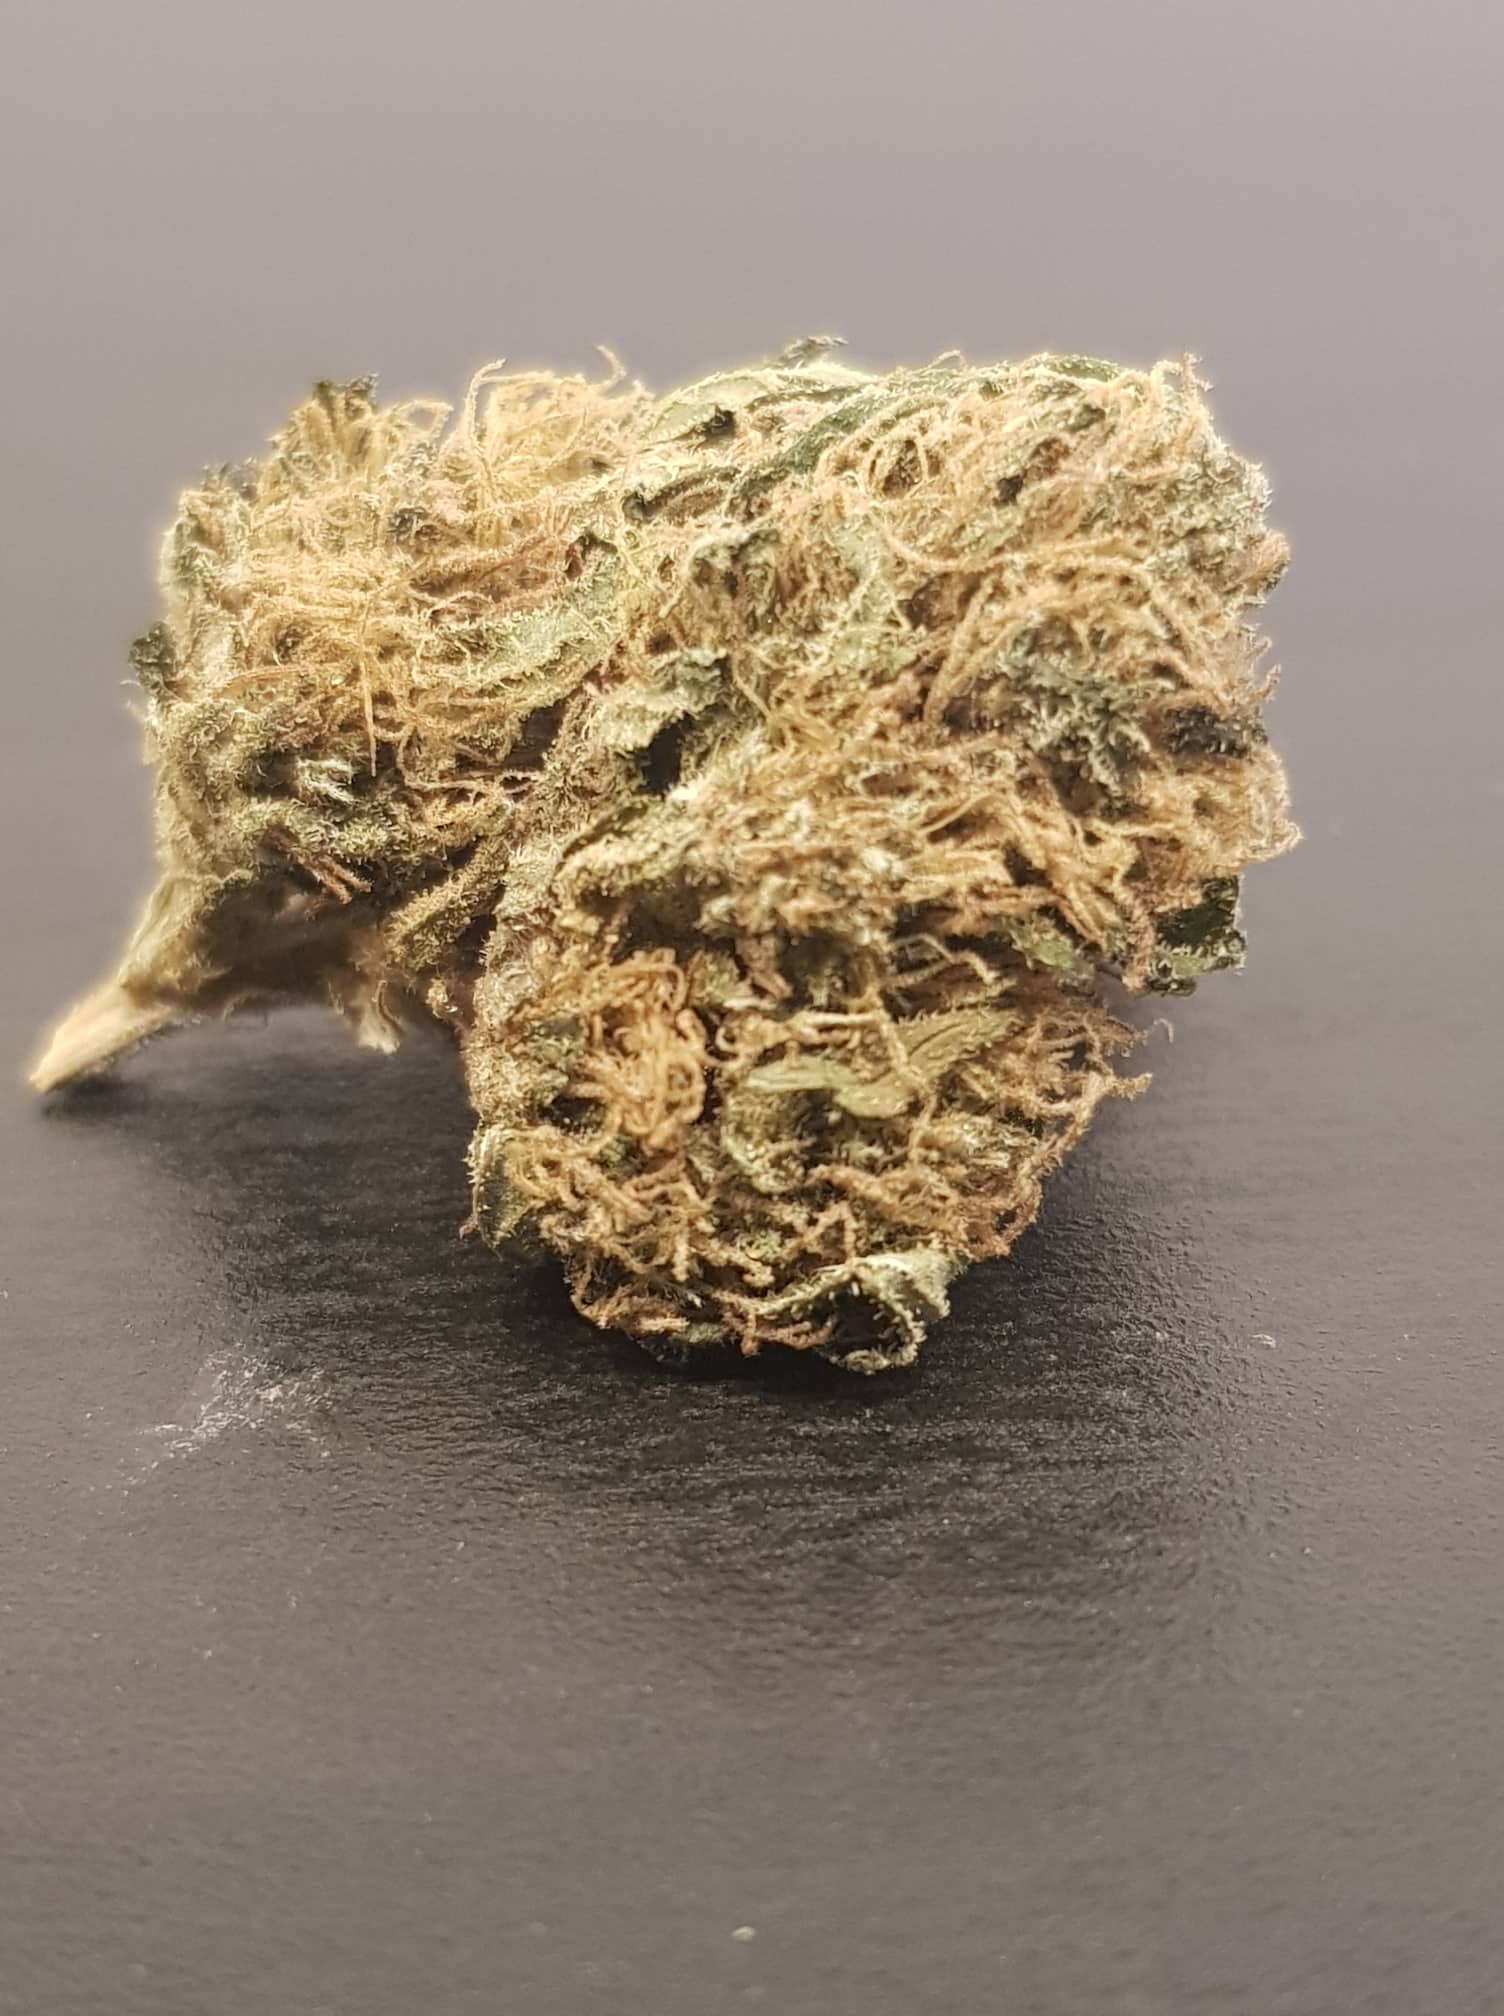 Apple Punch CBD